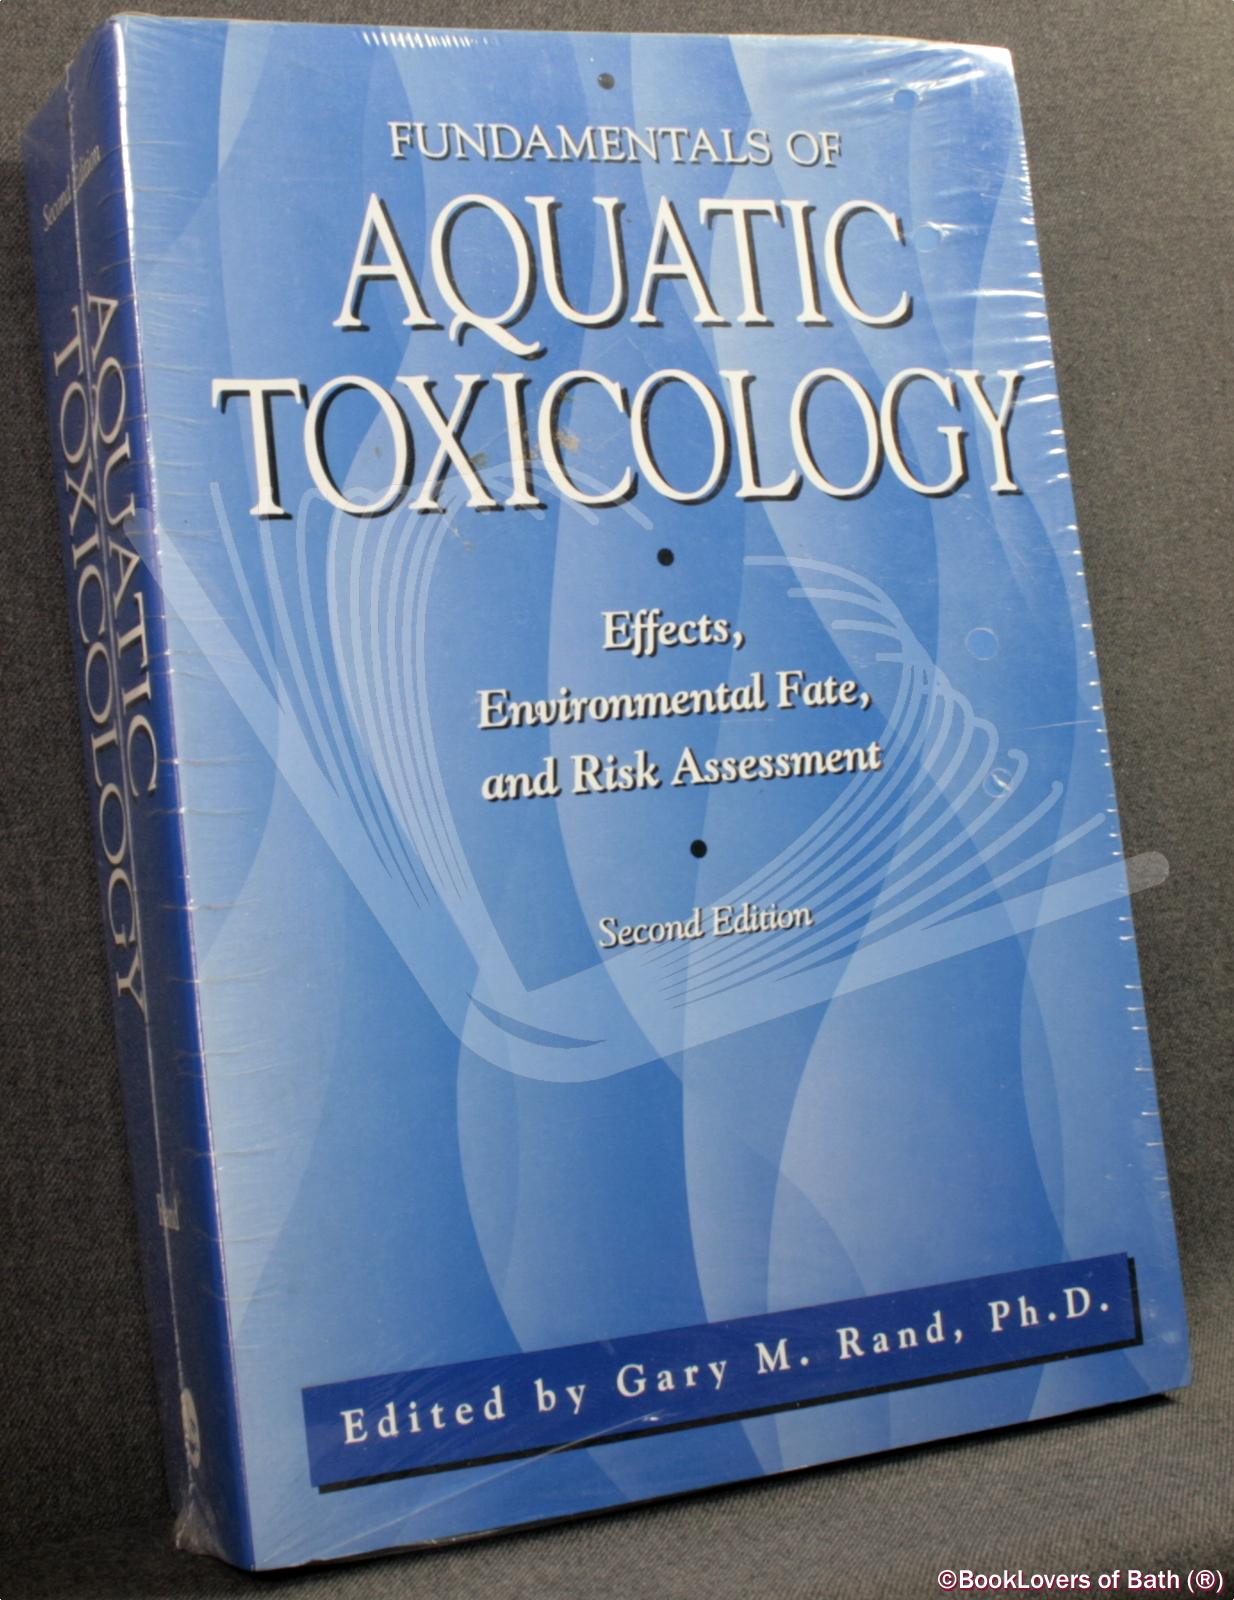 Fundamentals of Aquatic Toxicology: Effects, Environmental Fate and Risk Assessment - Edited by Gary M. Rand